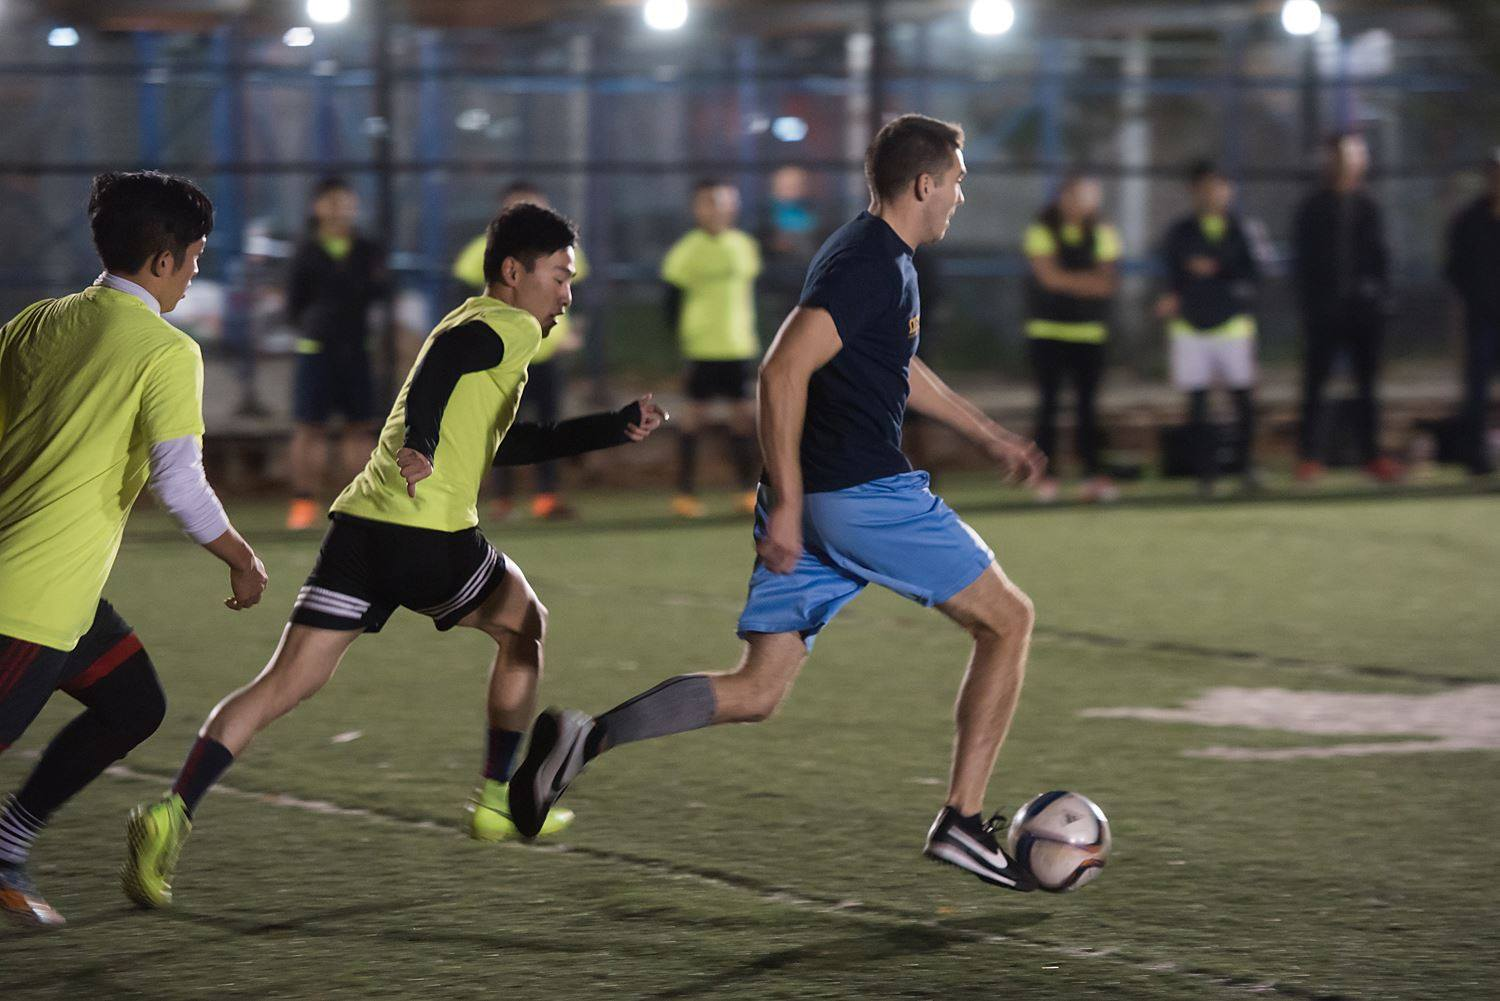 Play Mile High | Denver's best coed social sports leagues